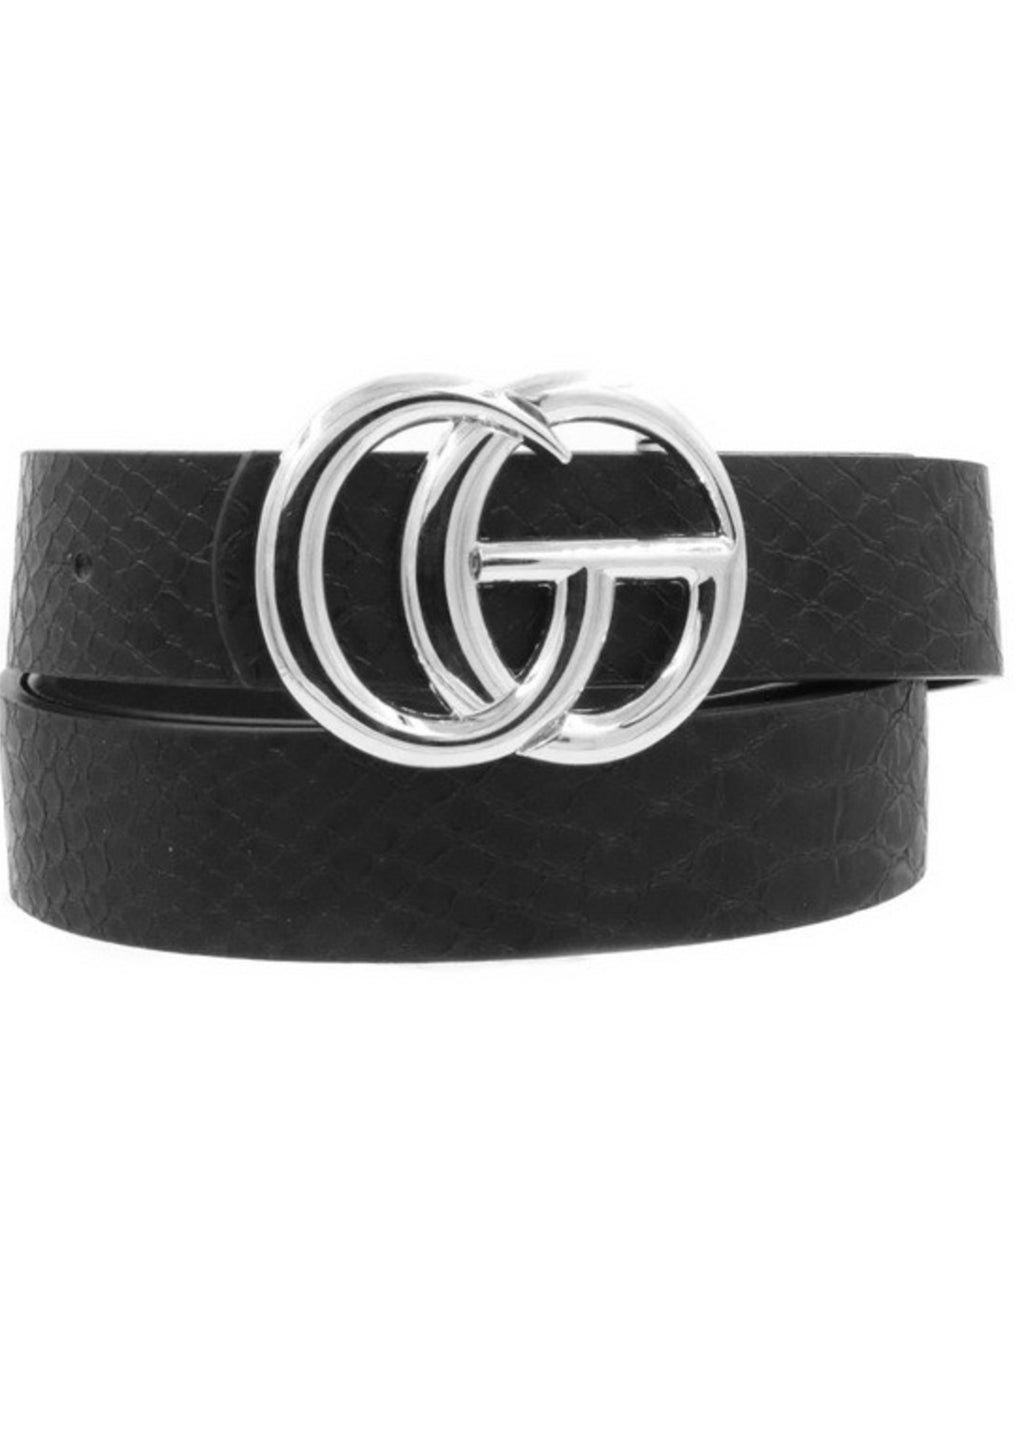 Black Croc Pattern GG Belt With Silver Buckle